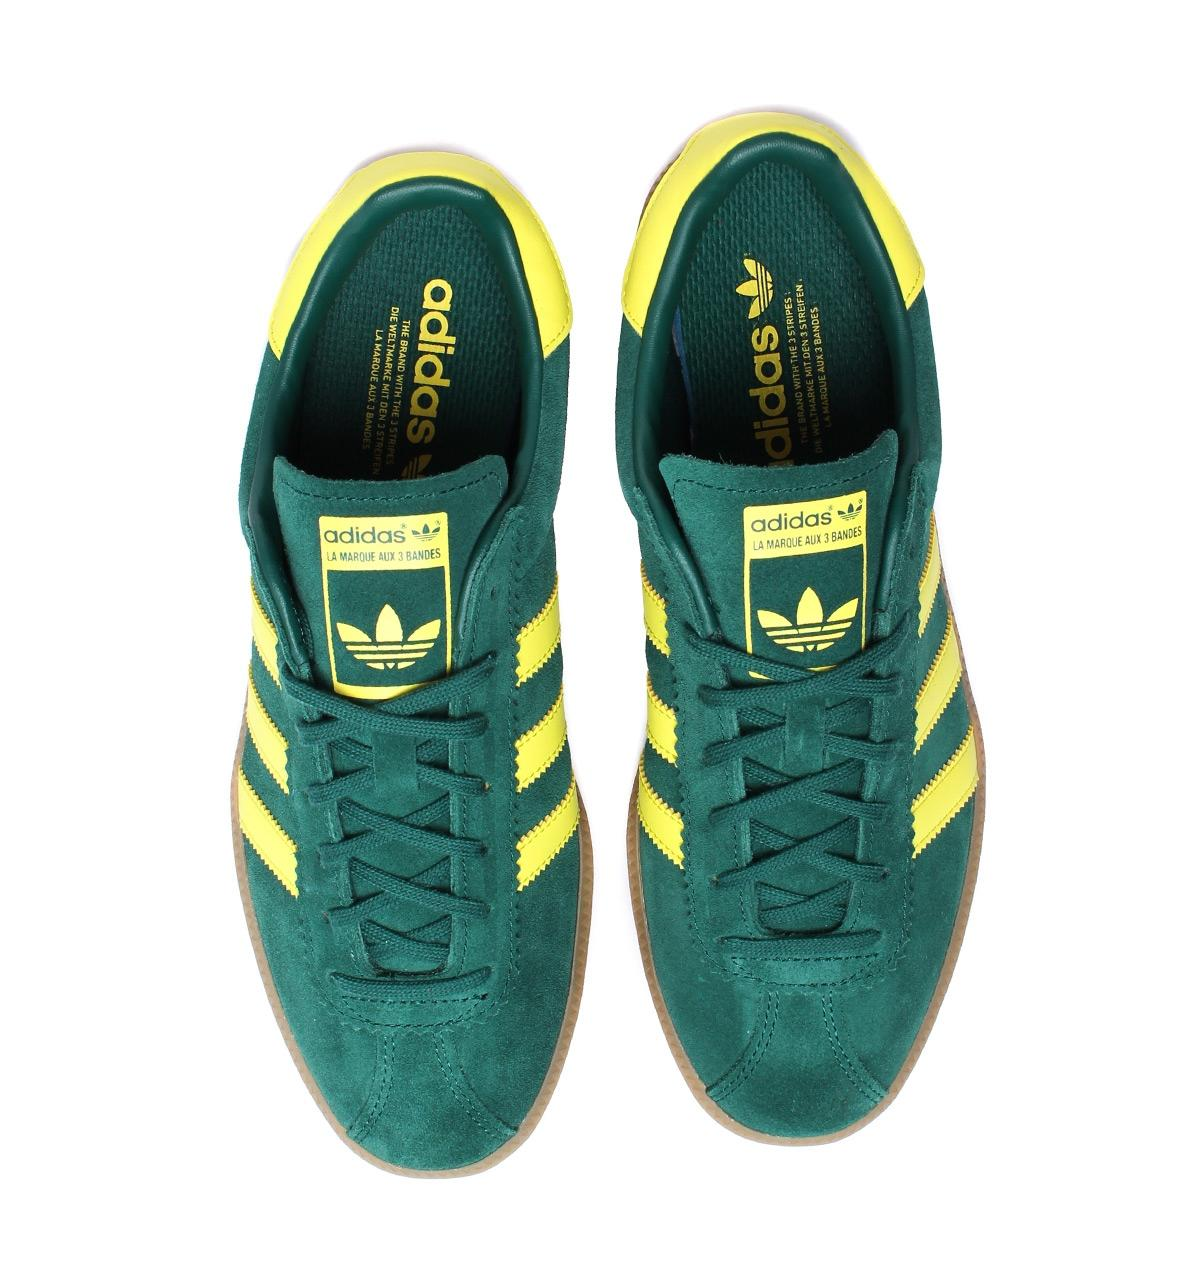 Lyst - adidas Originals Bermuda Collegiate Green   Shock Yellow ... 9f0e91153